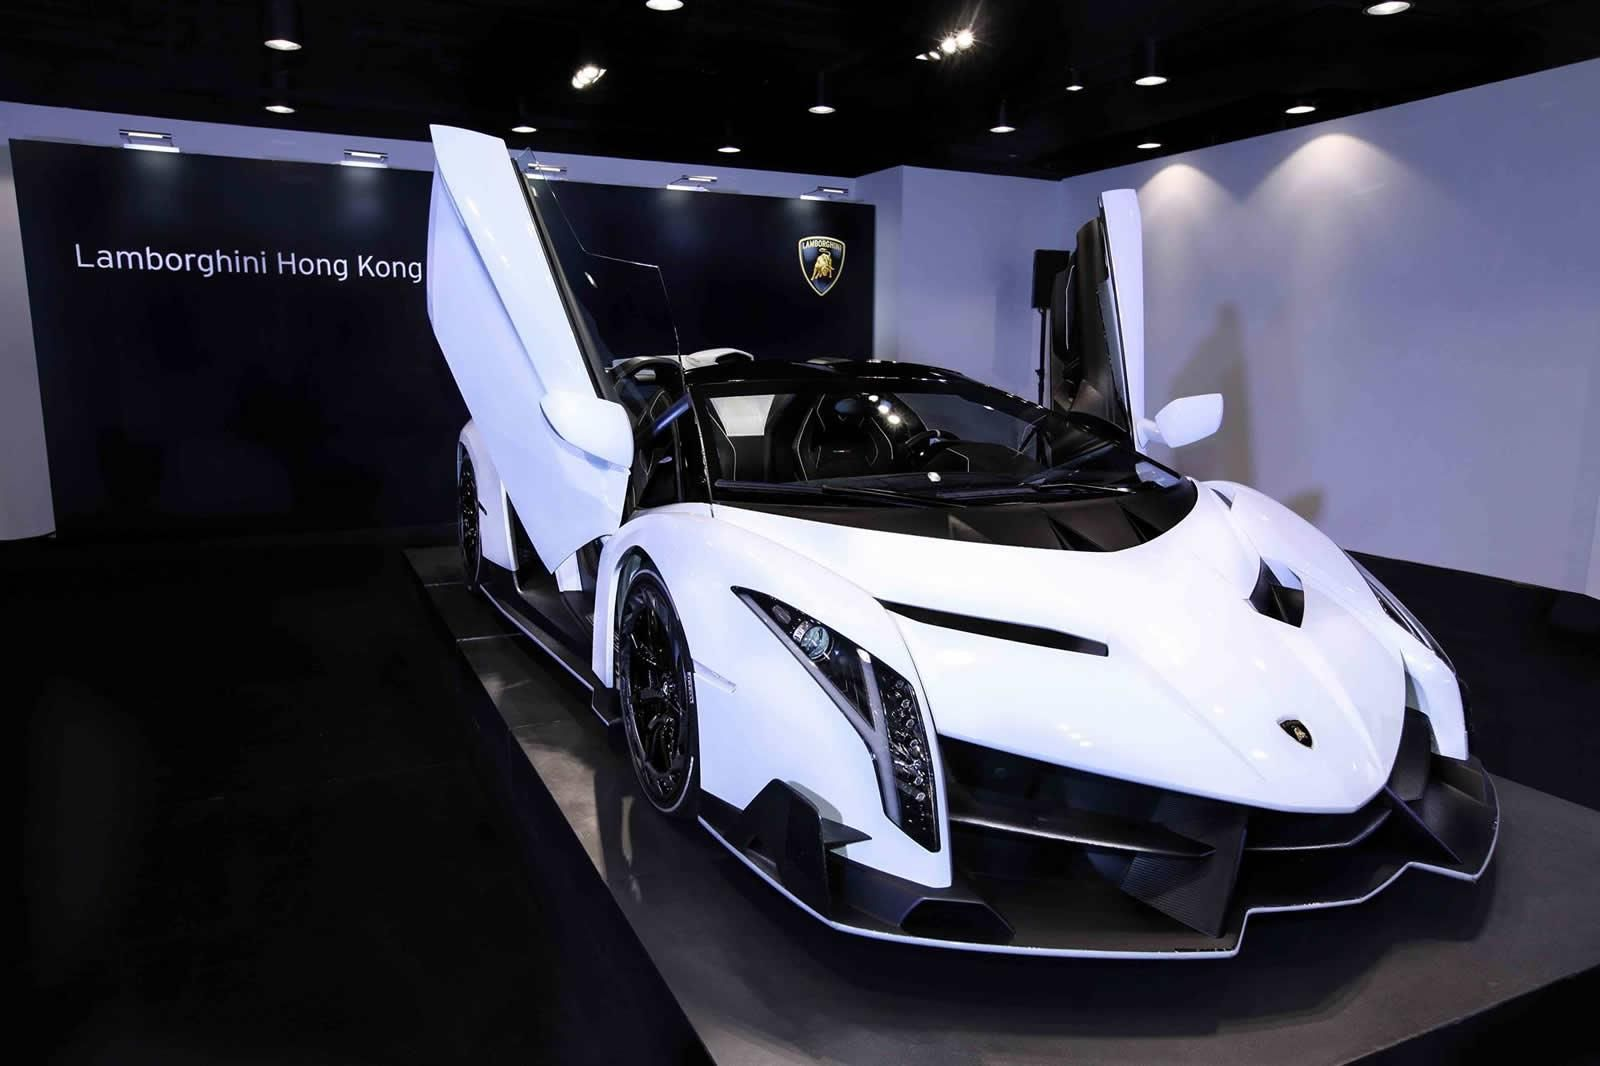 Lamborghini Veneno Wallpapers Full HD With Wallpaper Resolution 1366x768